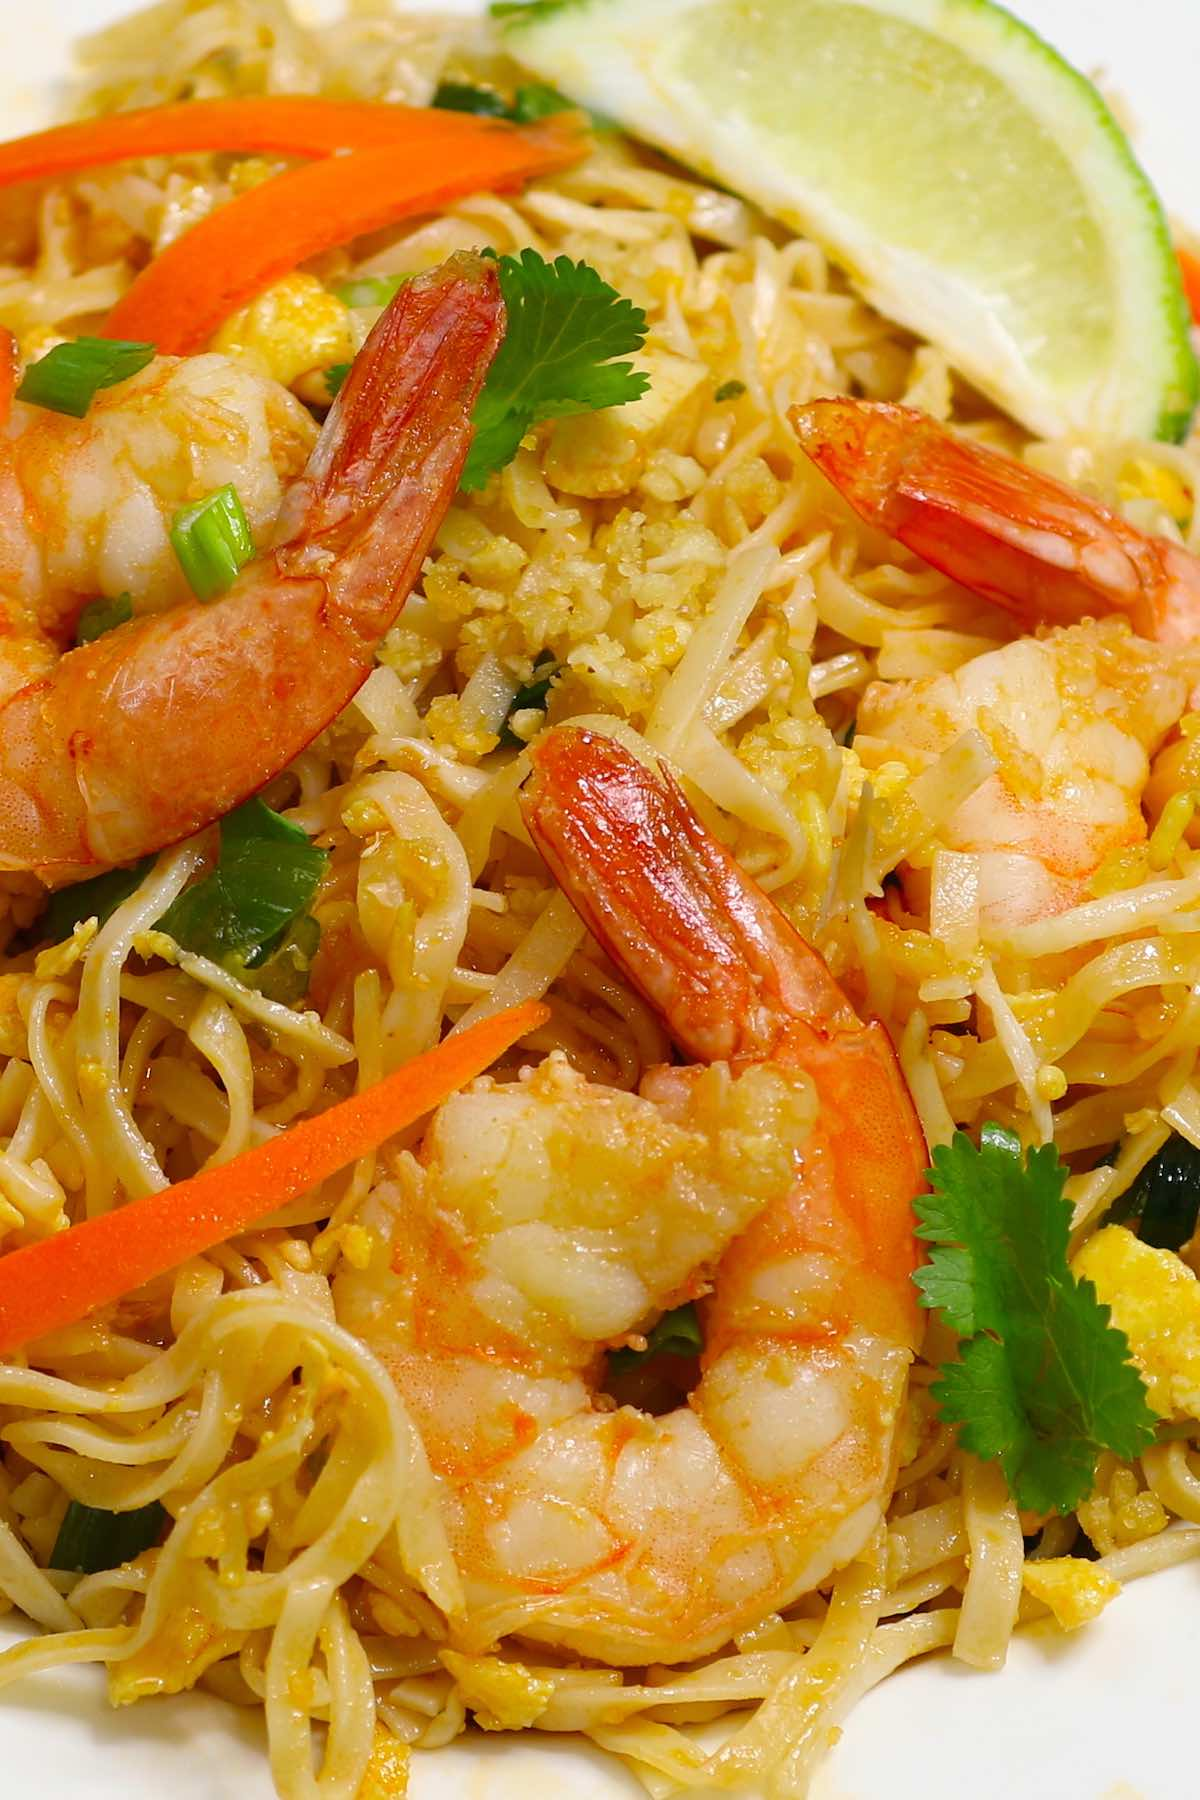 Shrimp Pad Thai is loaded with sweet, sour and spicy shrimp, rice noodles and vegetables. It's so simple and easy to make. Try it once and you won't want to go back to takeout! It comes together in only 20 minutes.